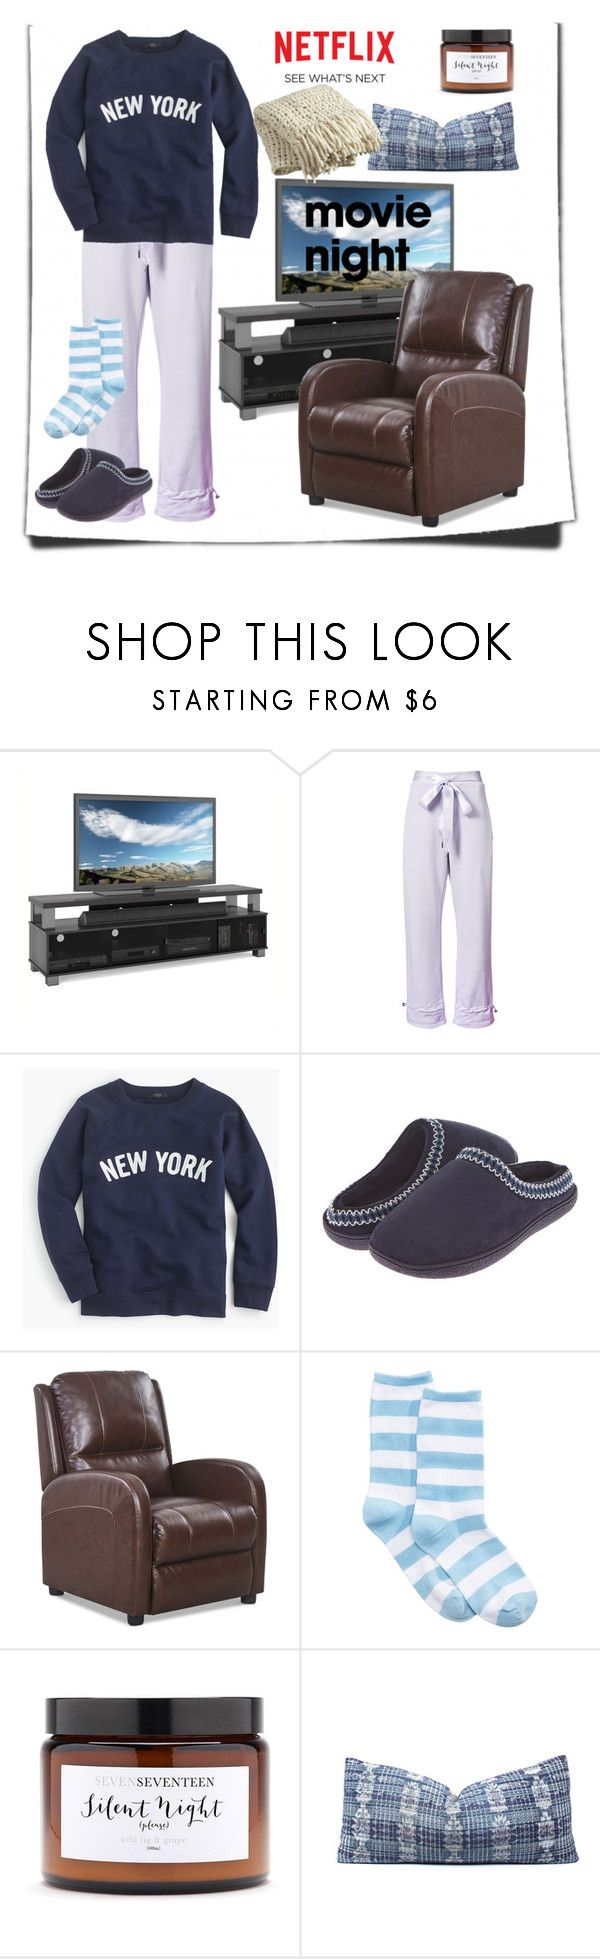 """movie night"" by maryfromnewengland ❤ liked on Polyvore featuring Sonax, Puma, J.Crew, Floopi, Identity, HOT SOX, Silent Night and CB2"